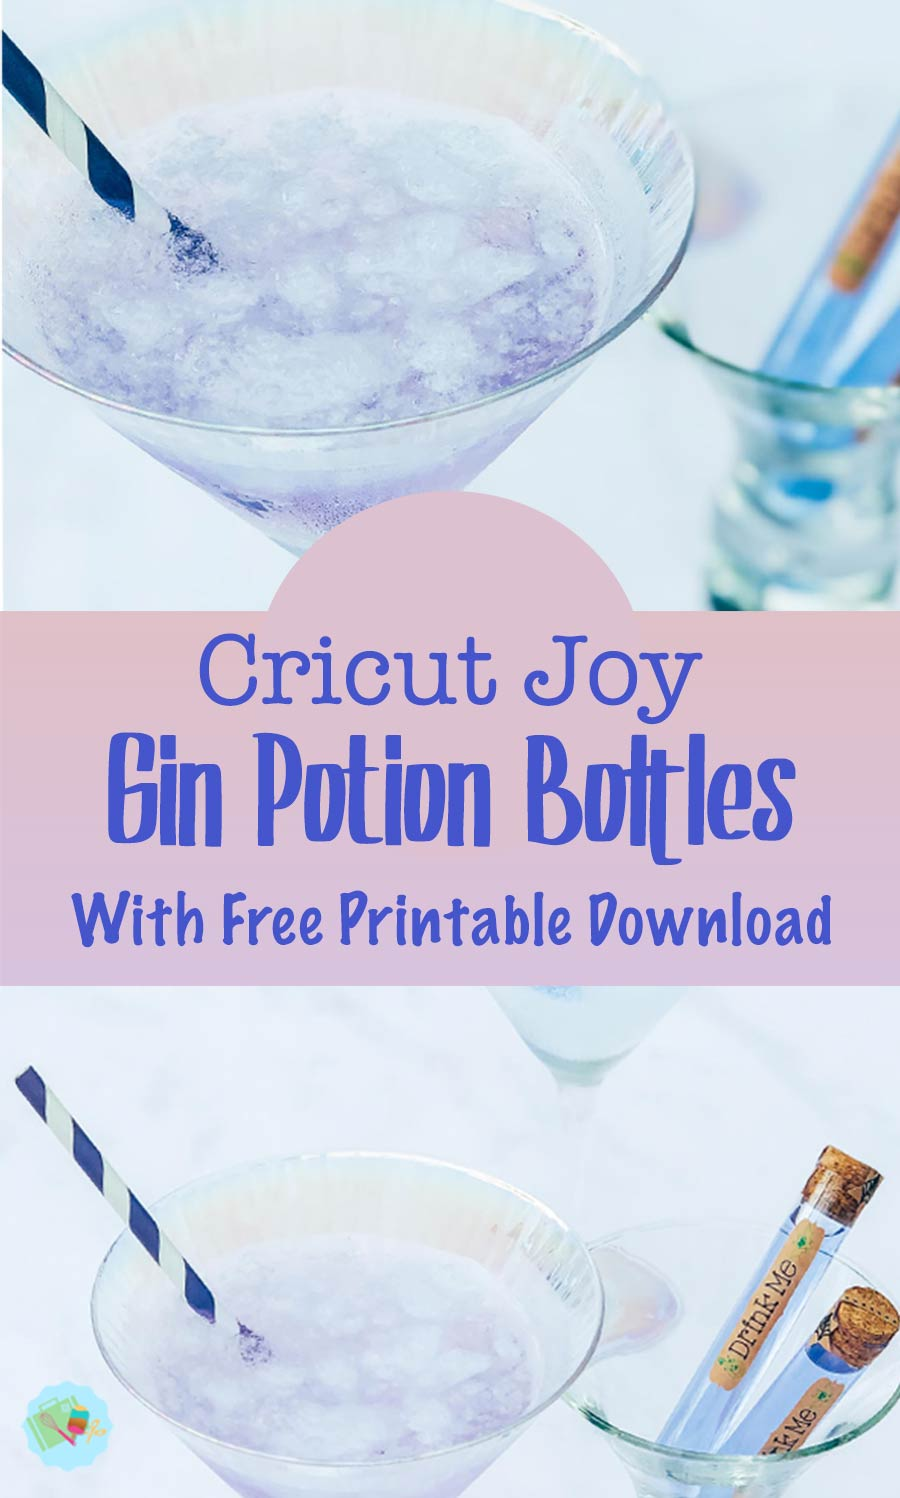 Gin Potion Bottles Made With tHe Cricut Joy and free Printable downloads_